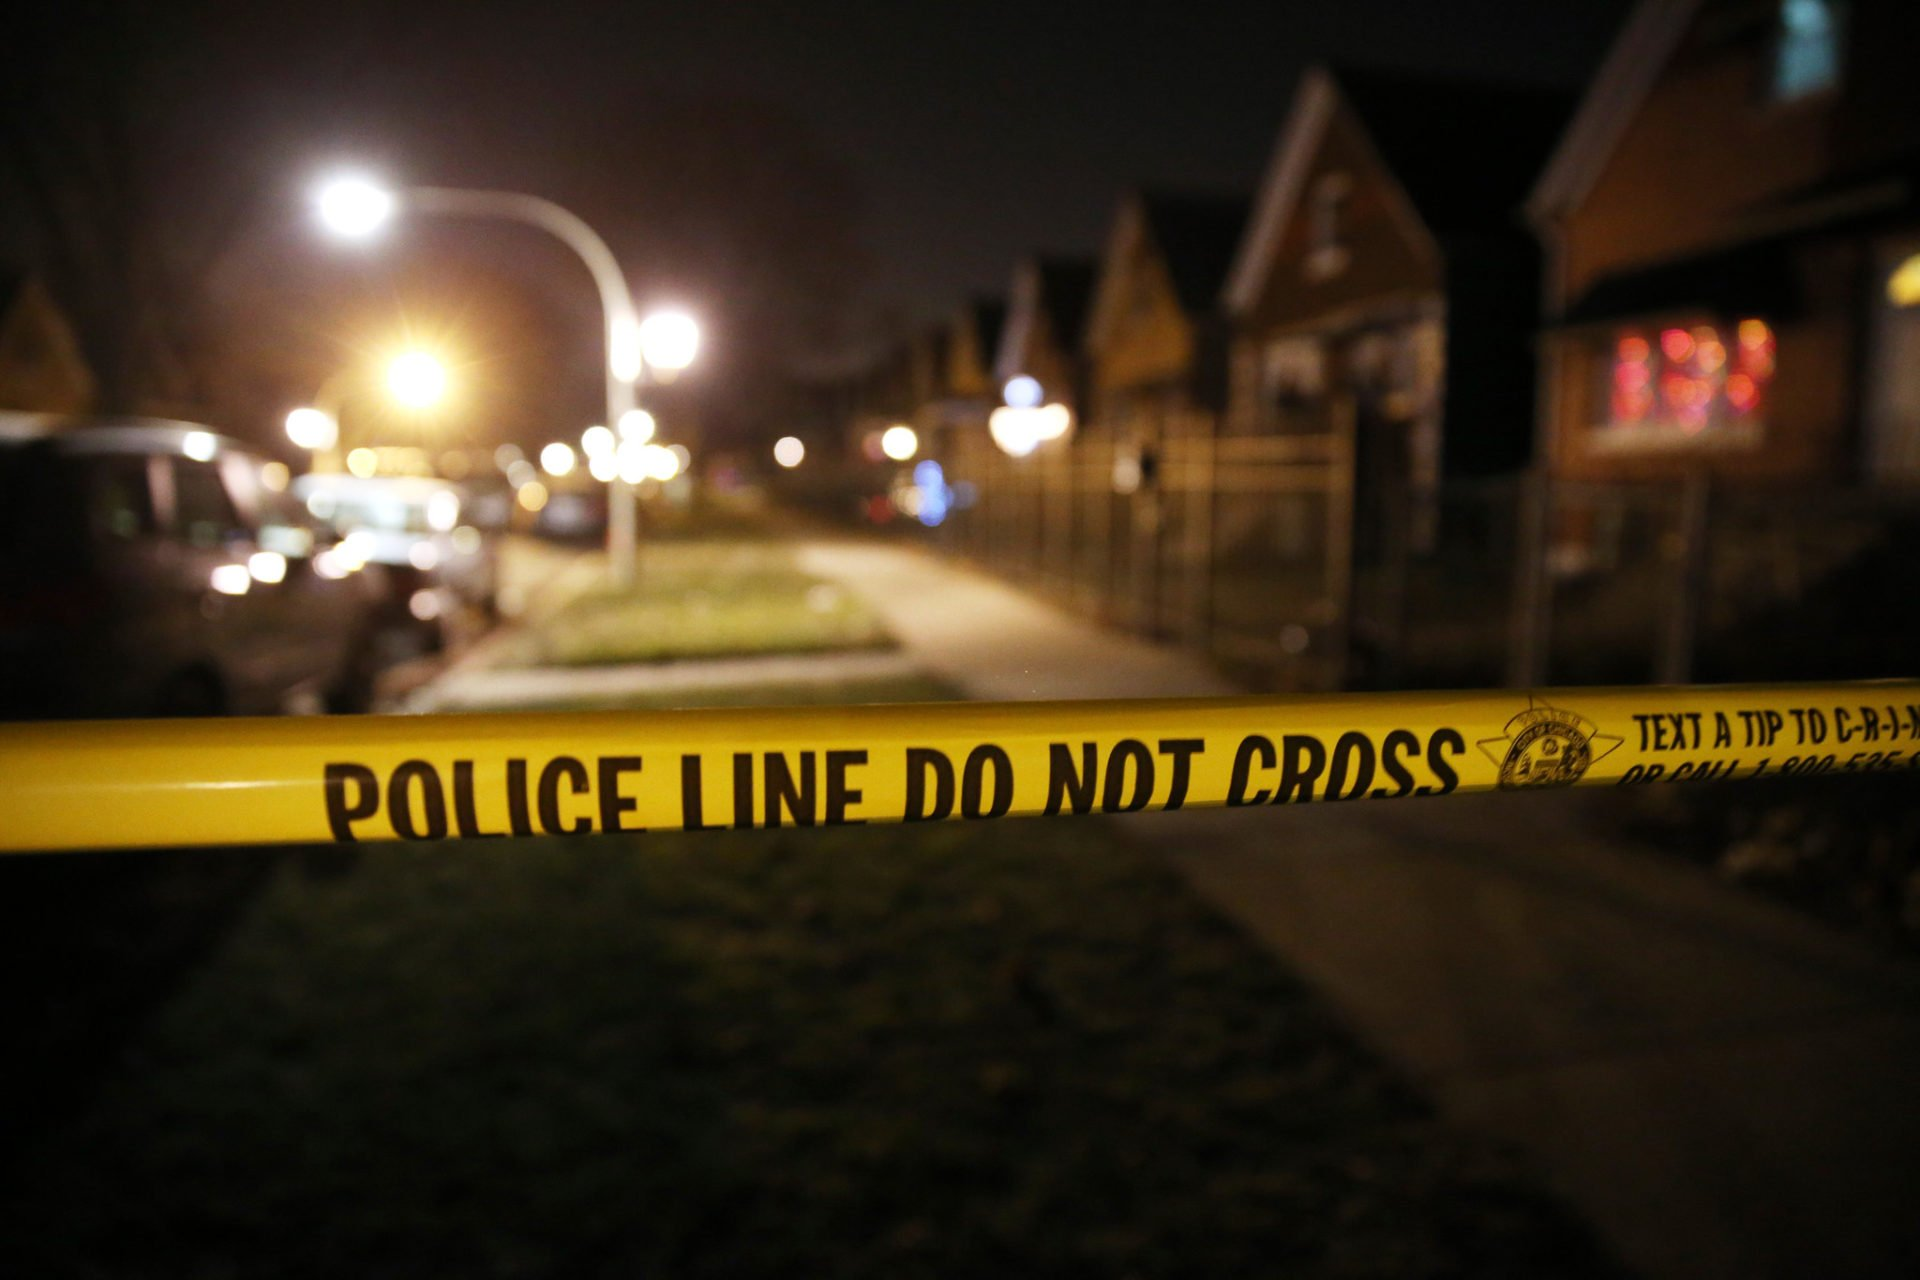 the reasons for rise in crime by school dropouts The high school reportable crime rate [crimes per 1,000 students] increased 66% however, there was a decrease in crimes by students in lower grades, resulting in an overall increase in reportable crimes for all grades of 215 and an overall crime rate increase of 15%.